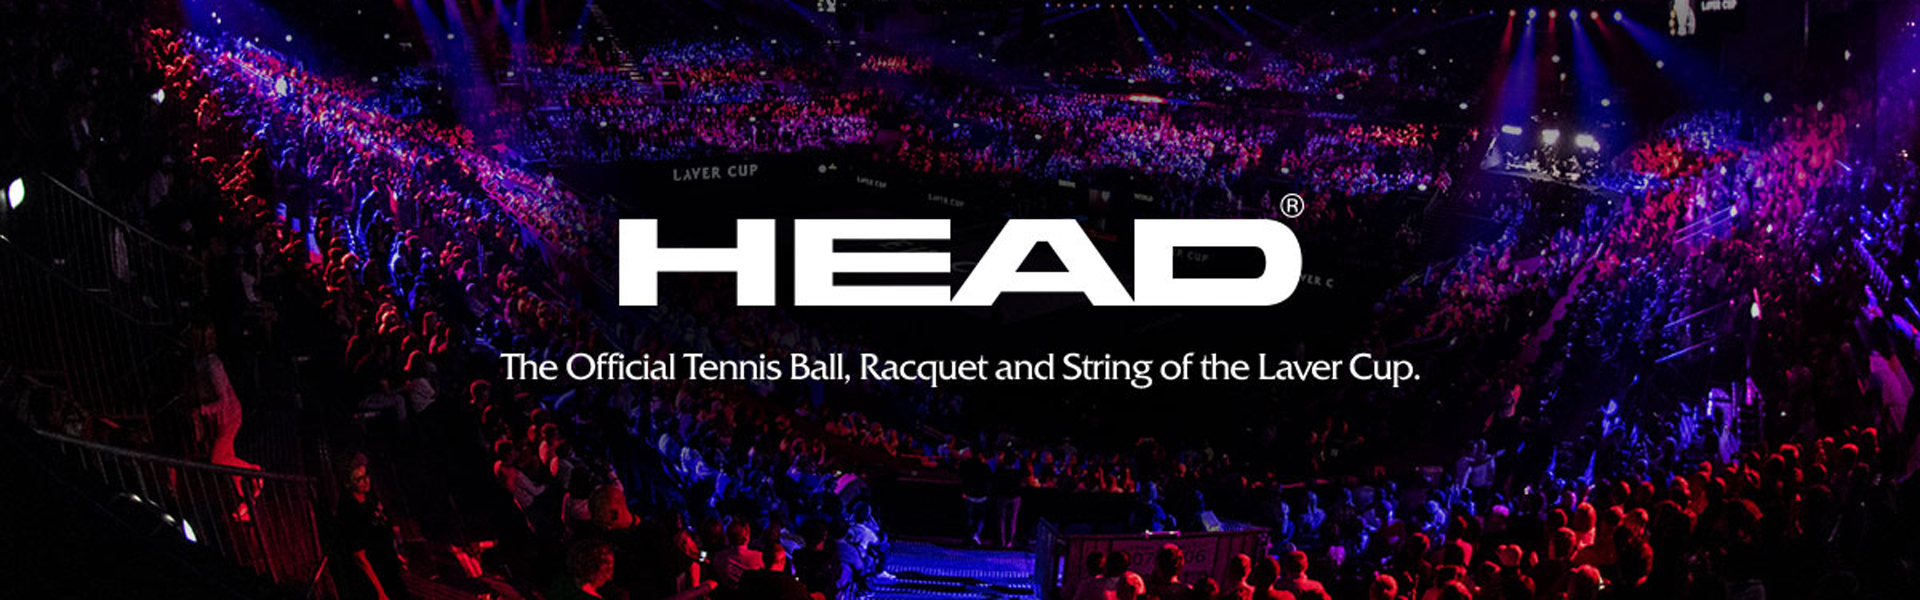 HEAD becomes Official Tennis Ball, Racquet and String of the Laver Cup